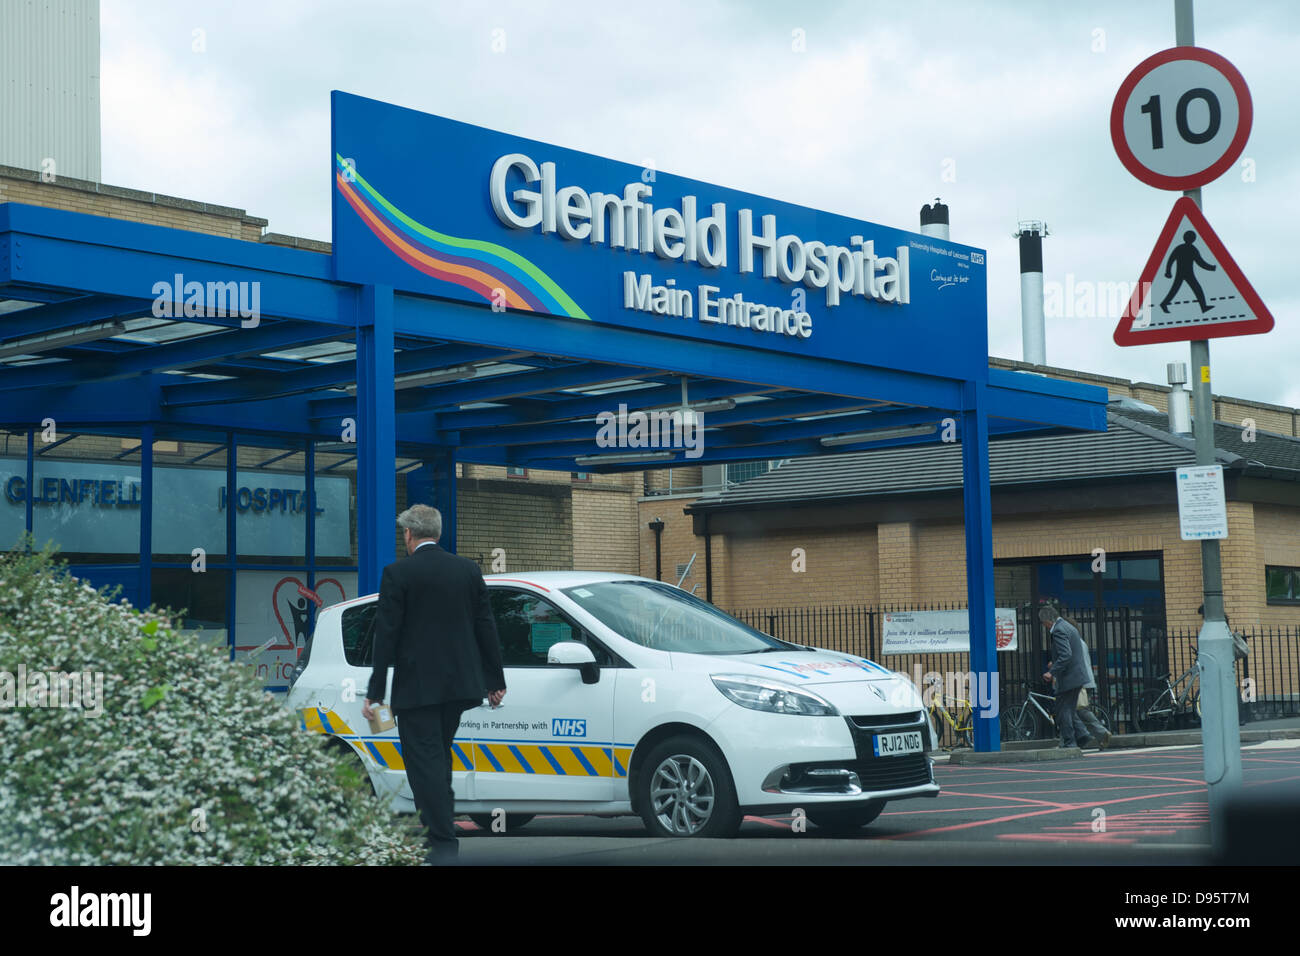 Glenfield Hospital Main Entrance - Stock Image